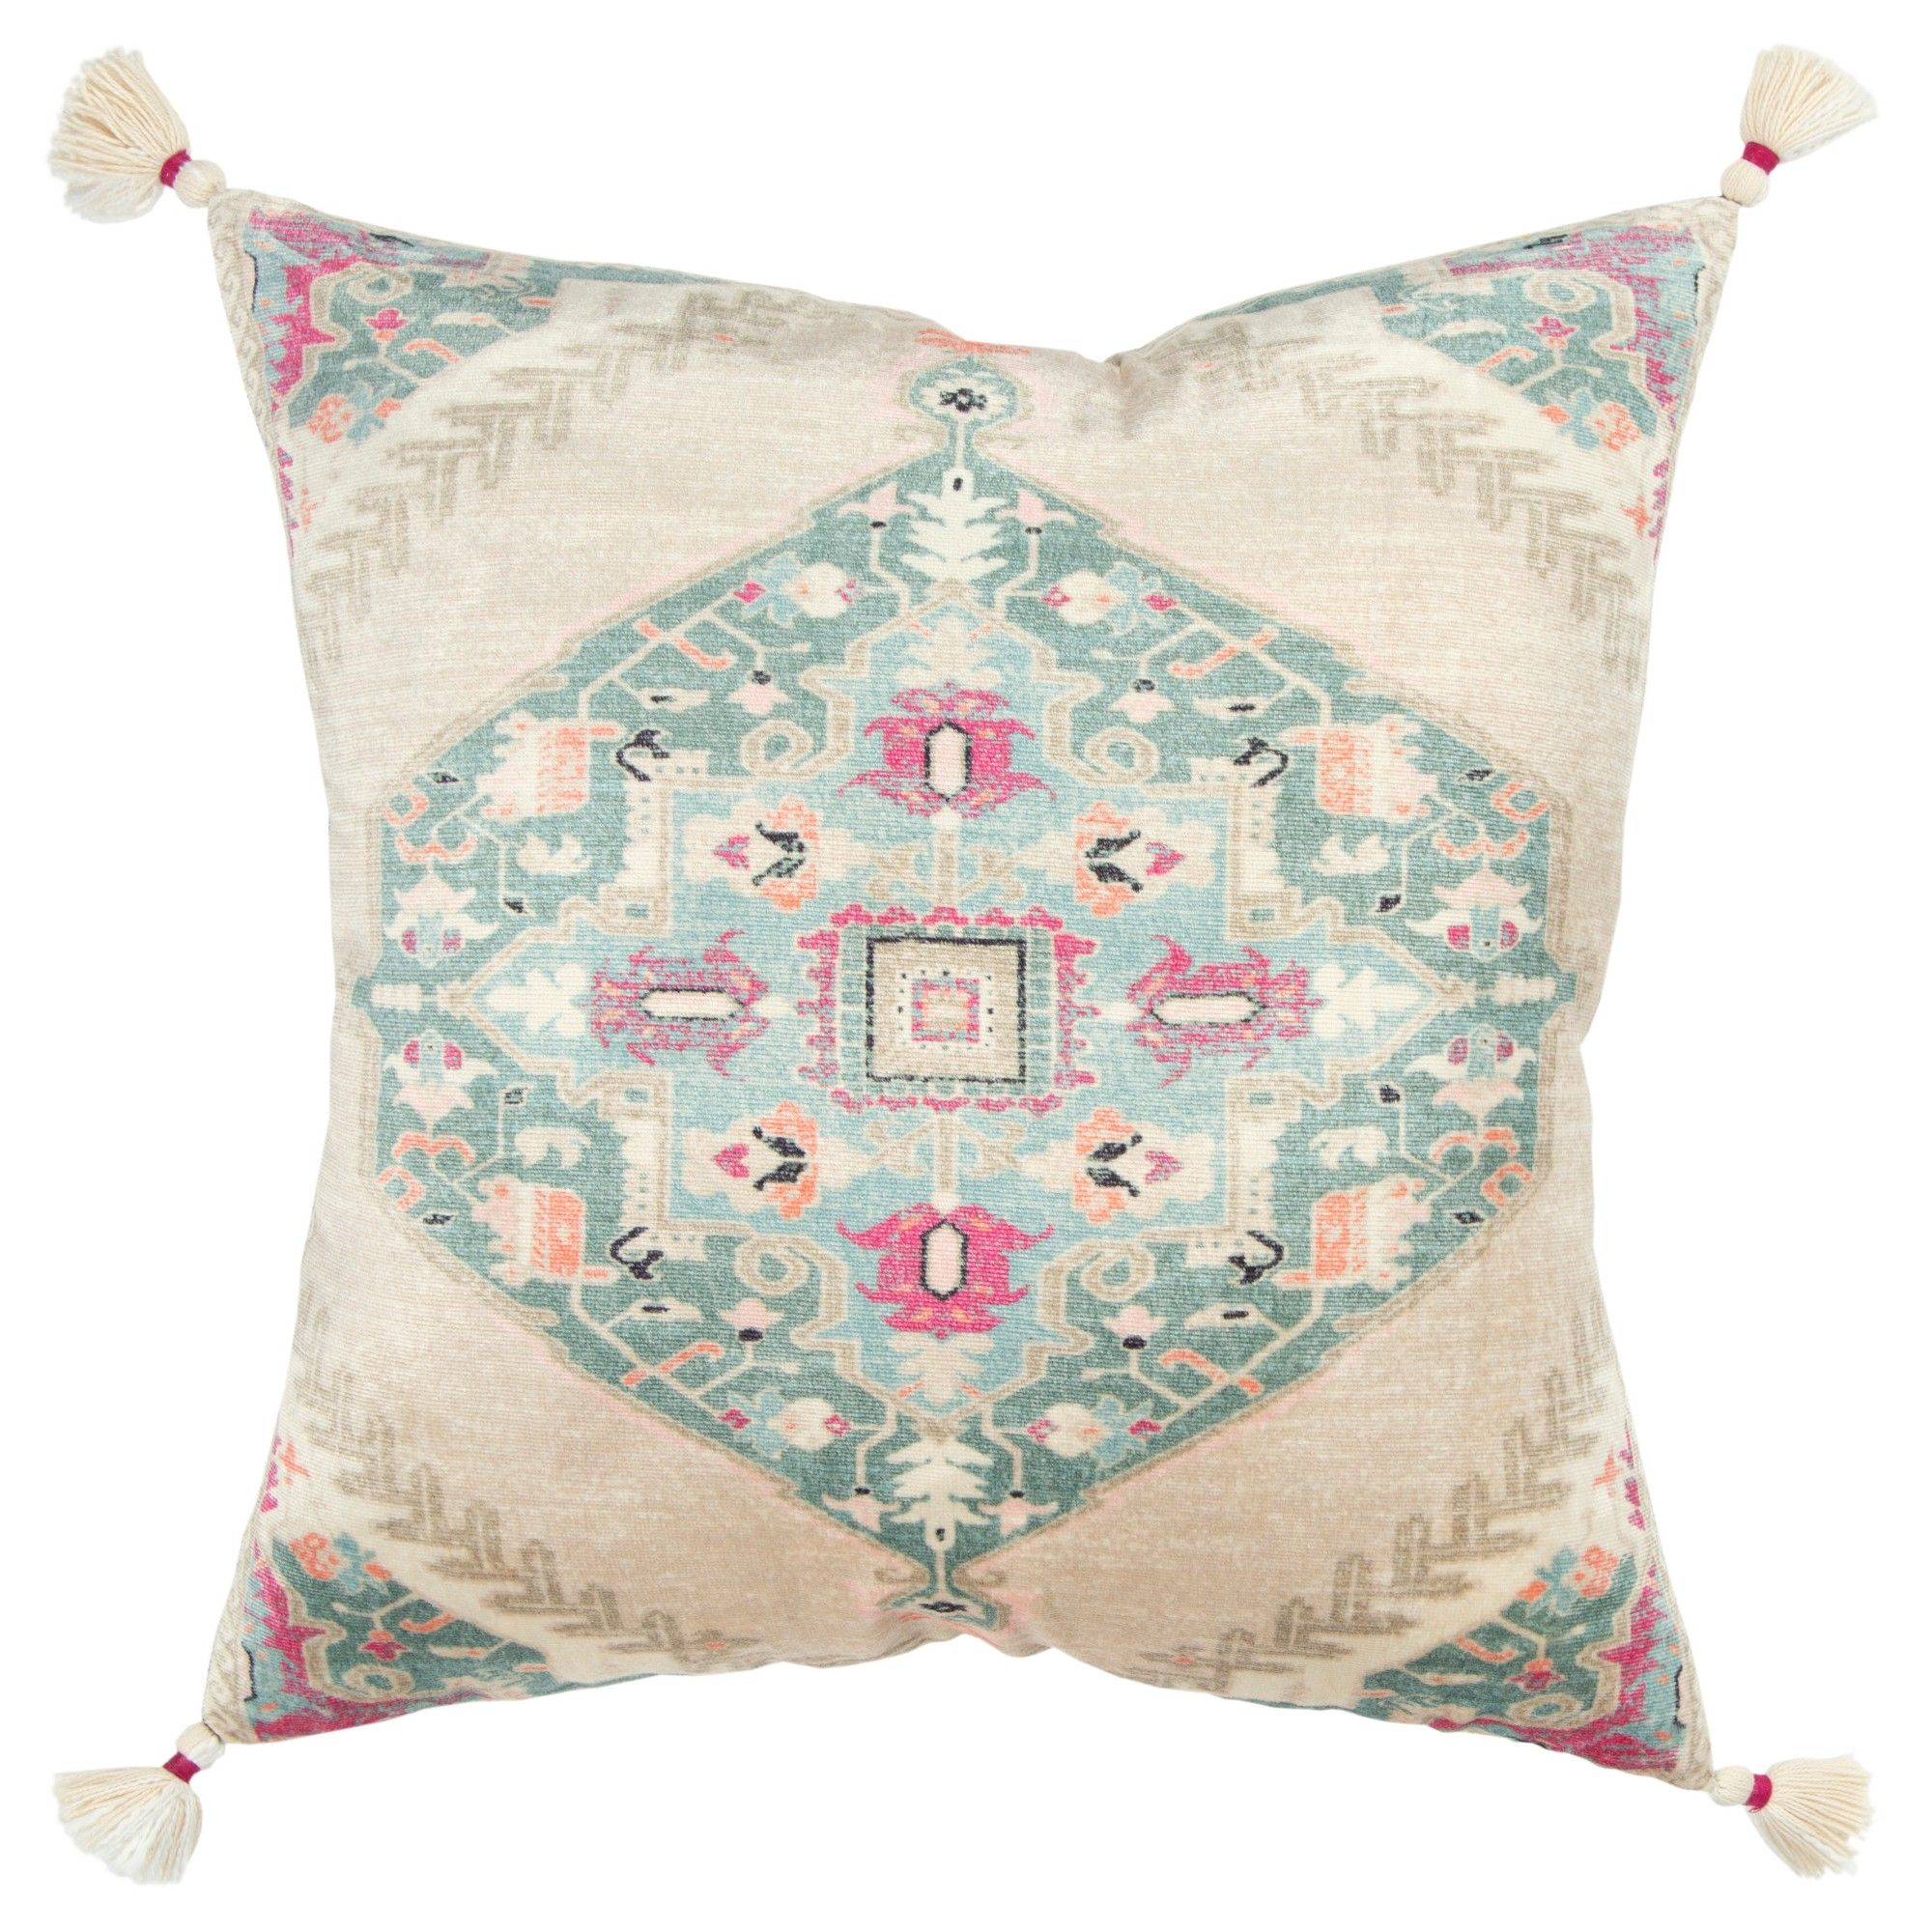 Rizzy Home Medallion Decorative Filled Oversize Throw Pillow